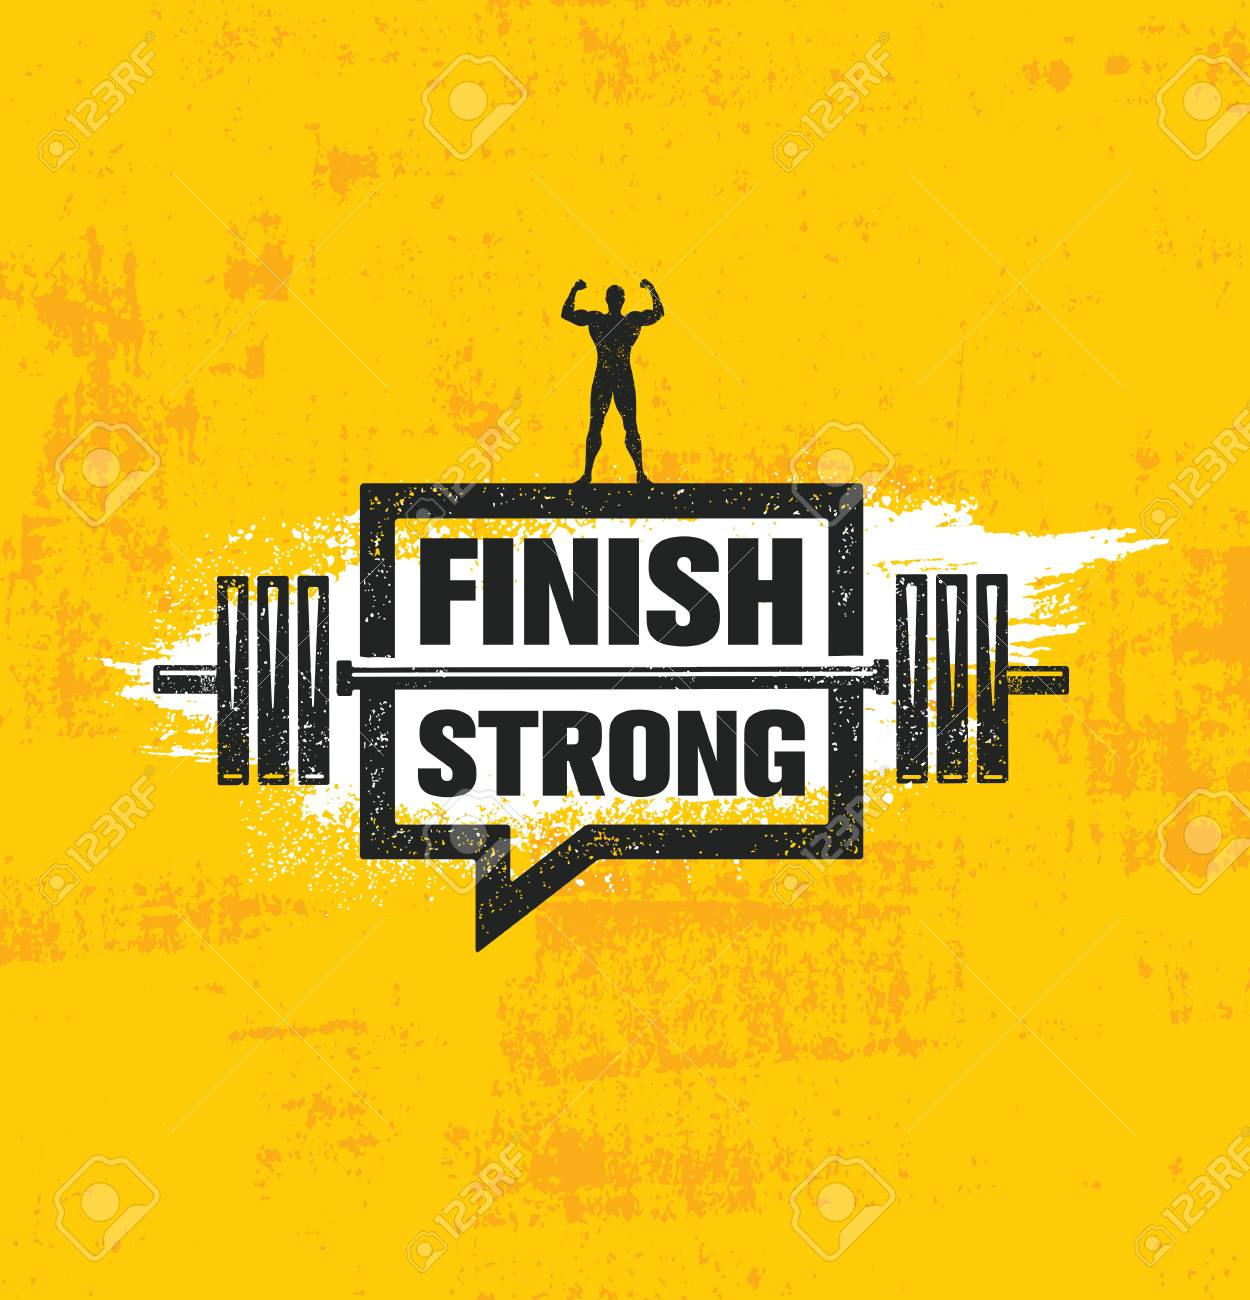 Finish Strong. Inspiring Workout and Fitness Gym Motivation Quote Illustration Sign. Creative Strong Sport Vector - 100477756